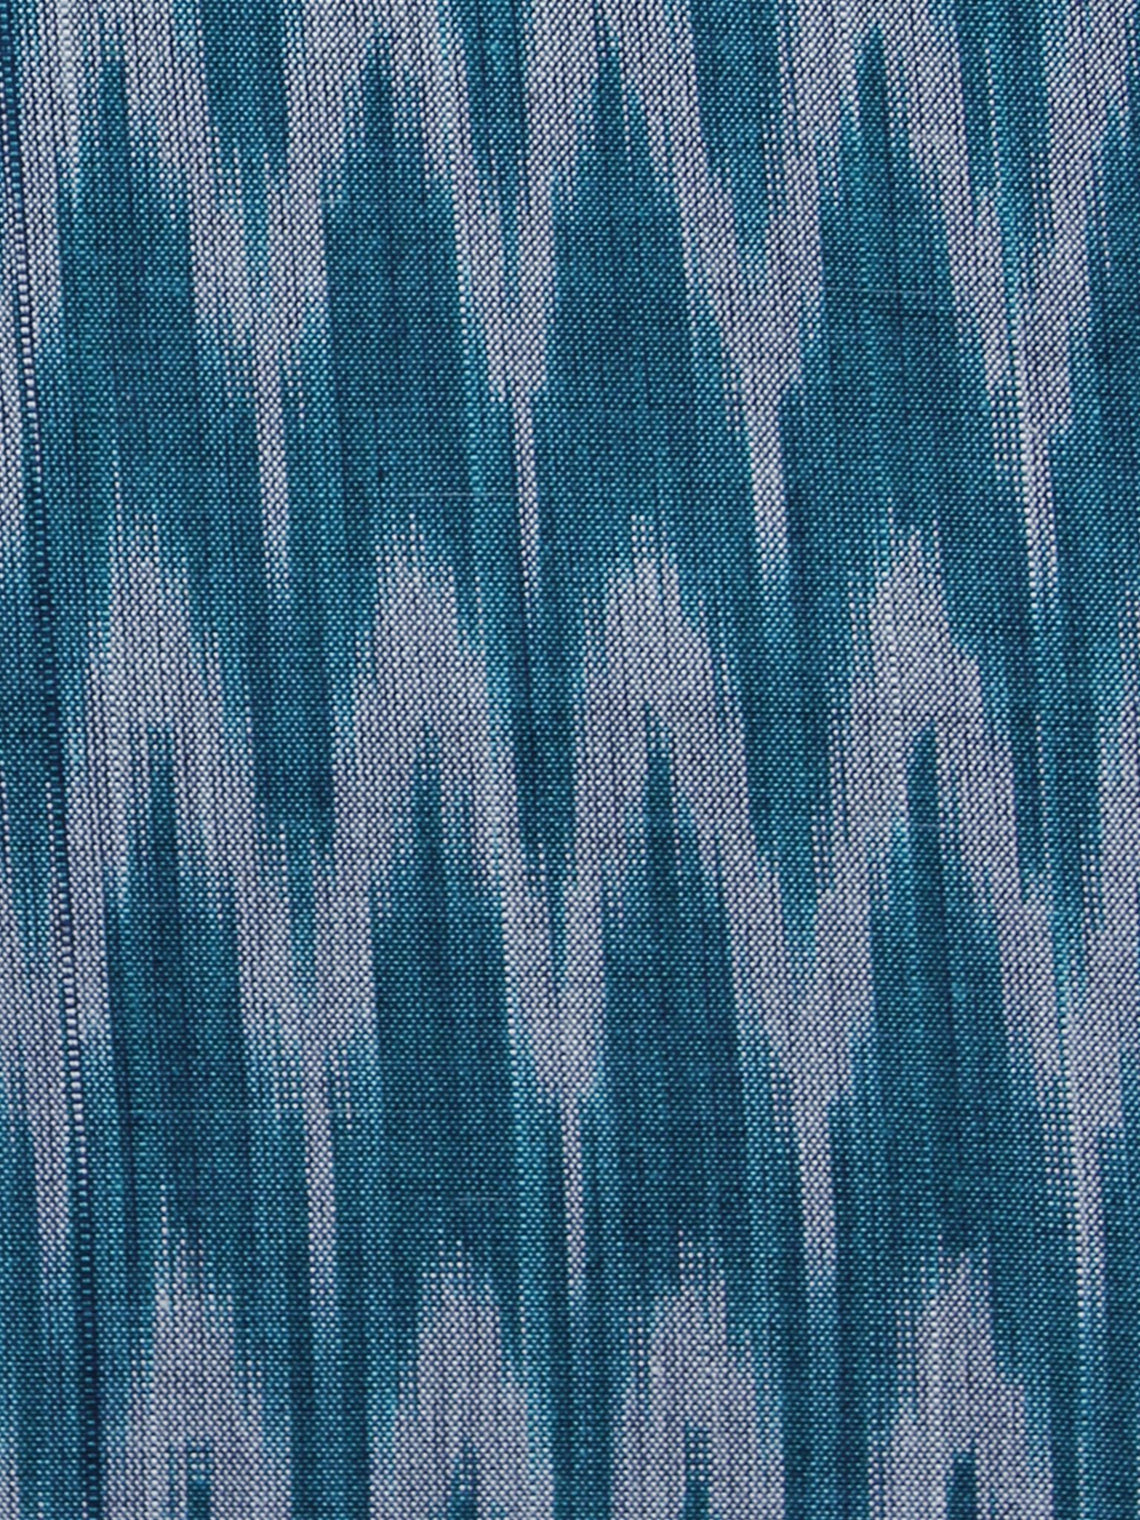 Teal Blue Grey Pochampally Hand Weaved Ikat Mercerised Fabric Per Meter - F003F1288